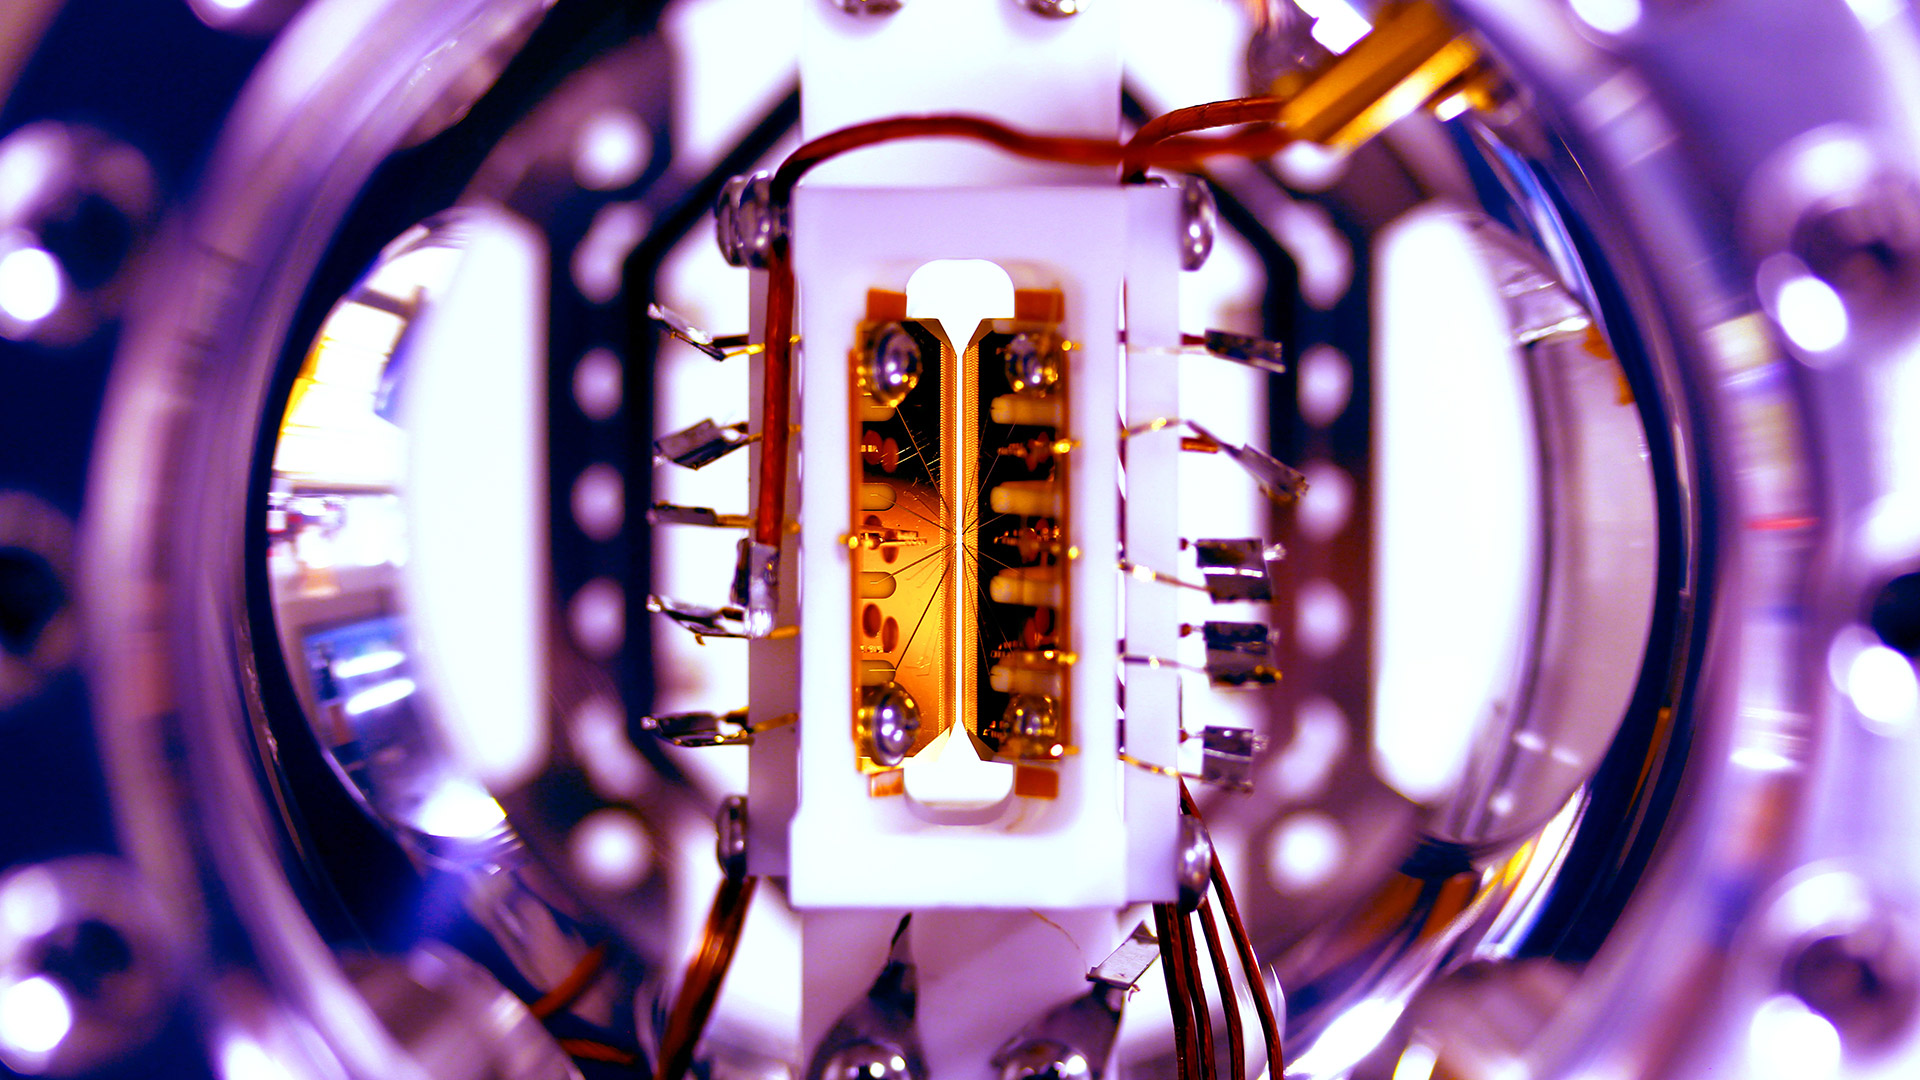 Groundbreaking UMD discovery: world's first time crystal, which could advance quantum computing